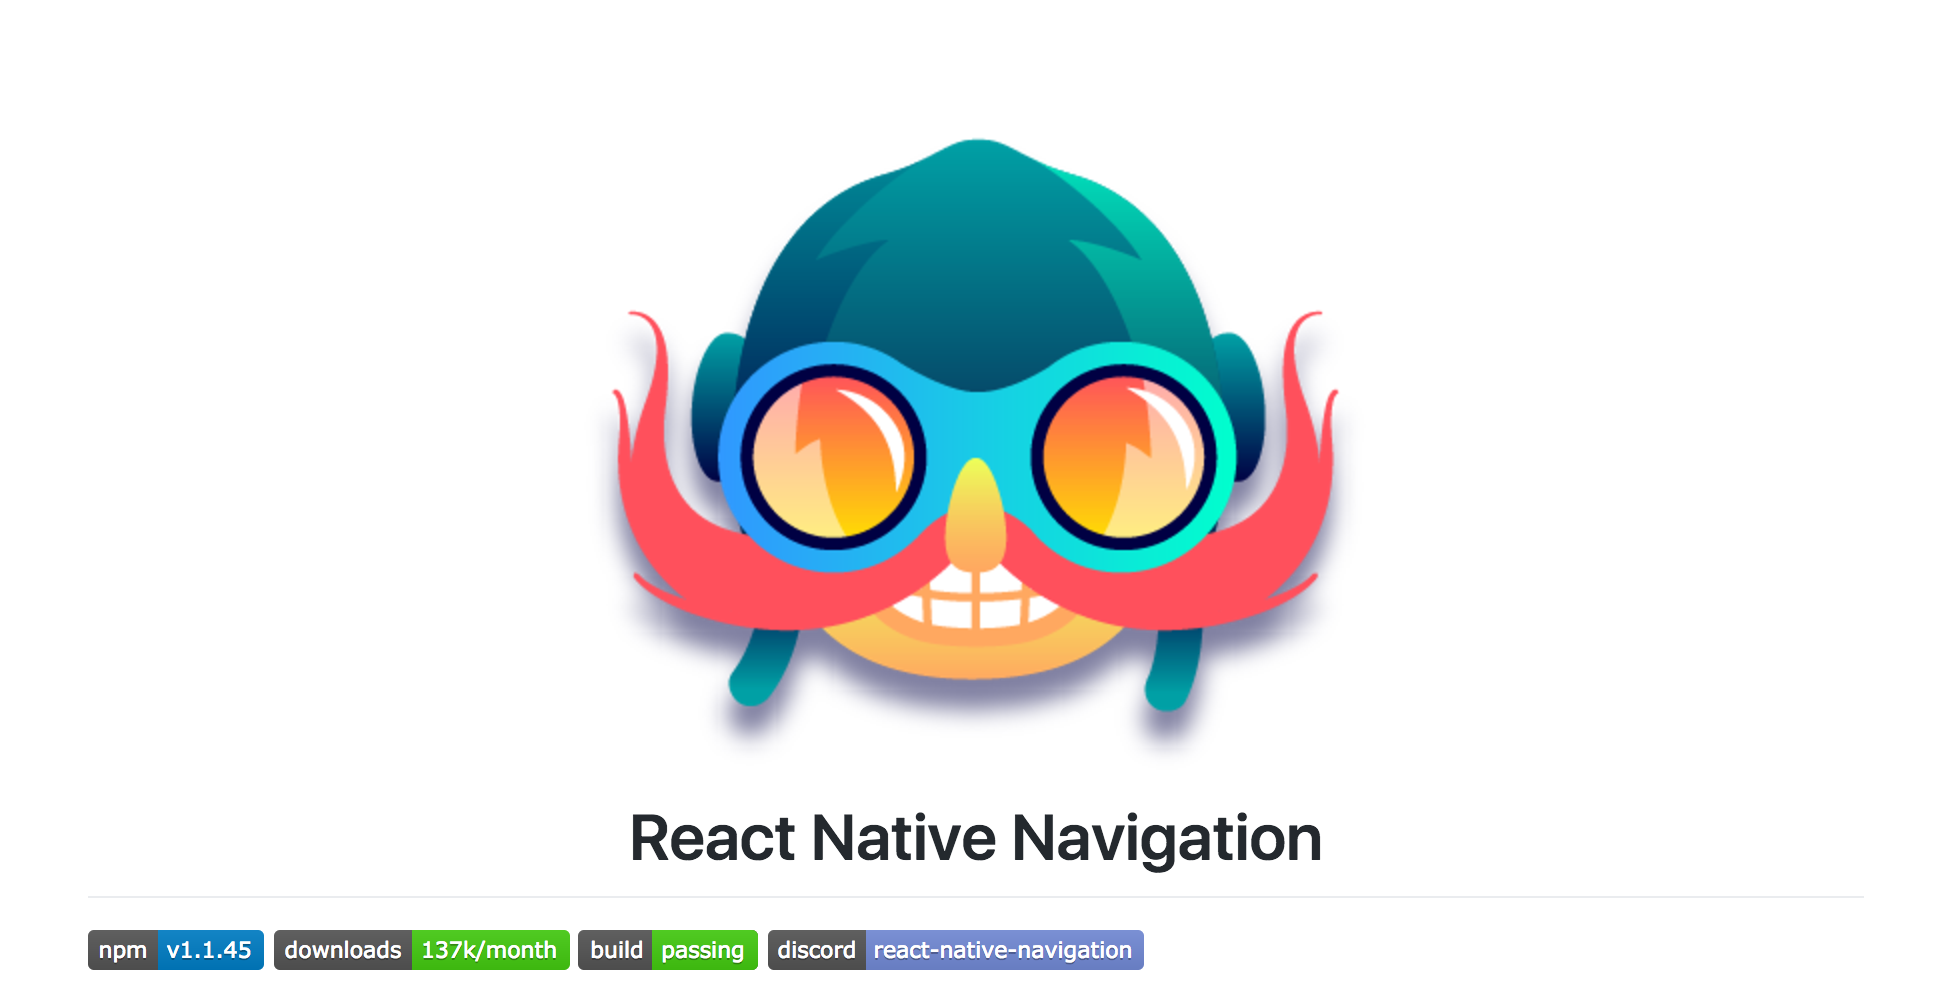 ⛵Thousand Ways to Navigate in React Native - The React